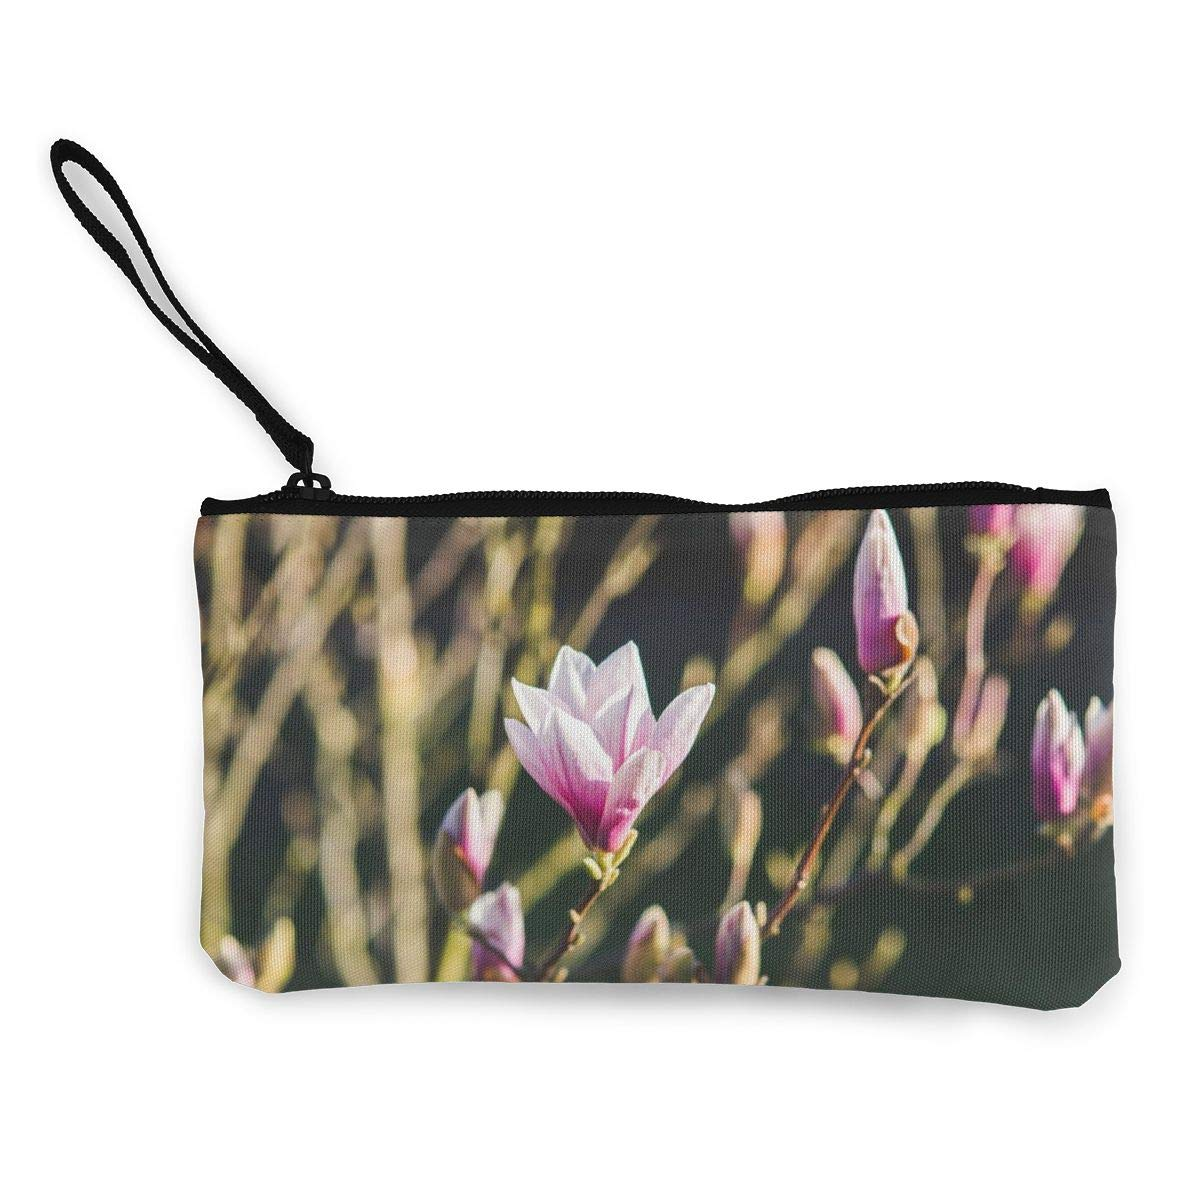 Make Up Bag,Cellphone Bag With Handle Magnolia-tree-in-pink-blossom Zipper Canvas Coin Purse Wallet